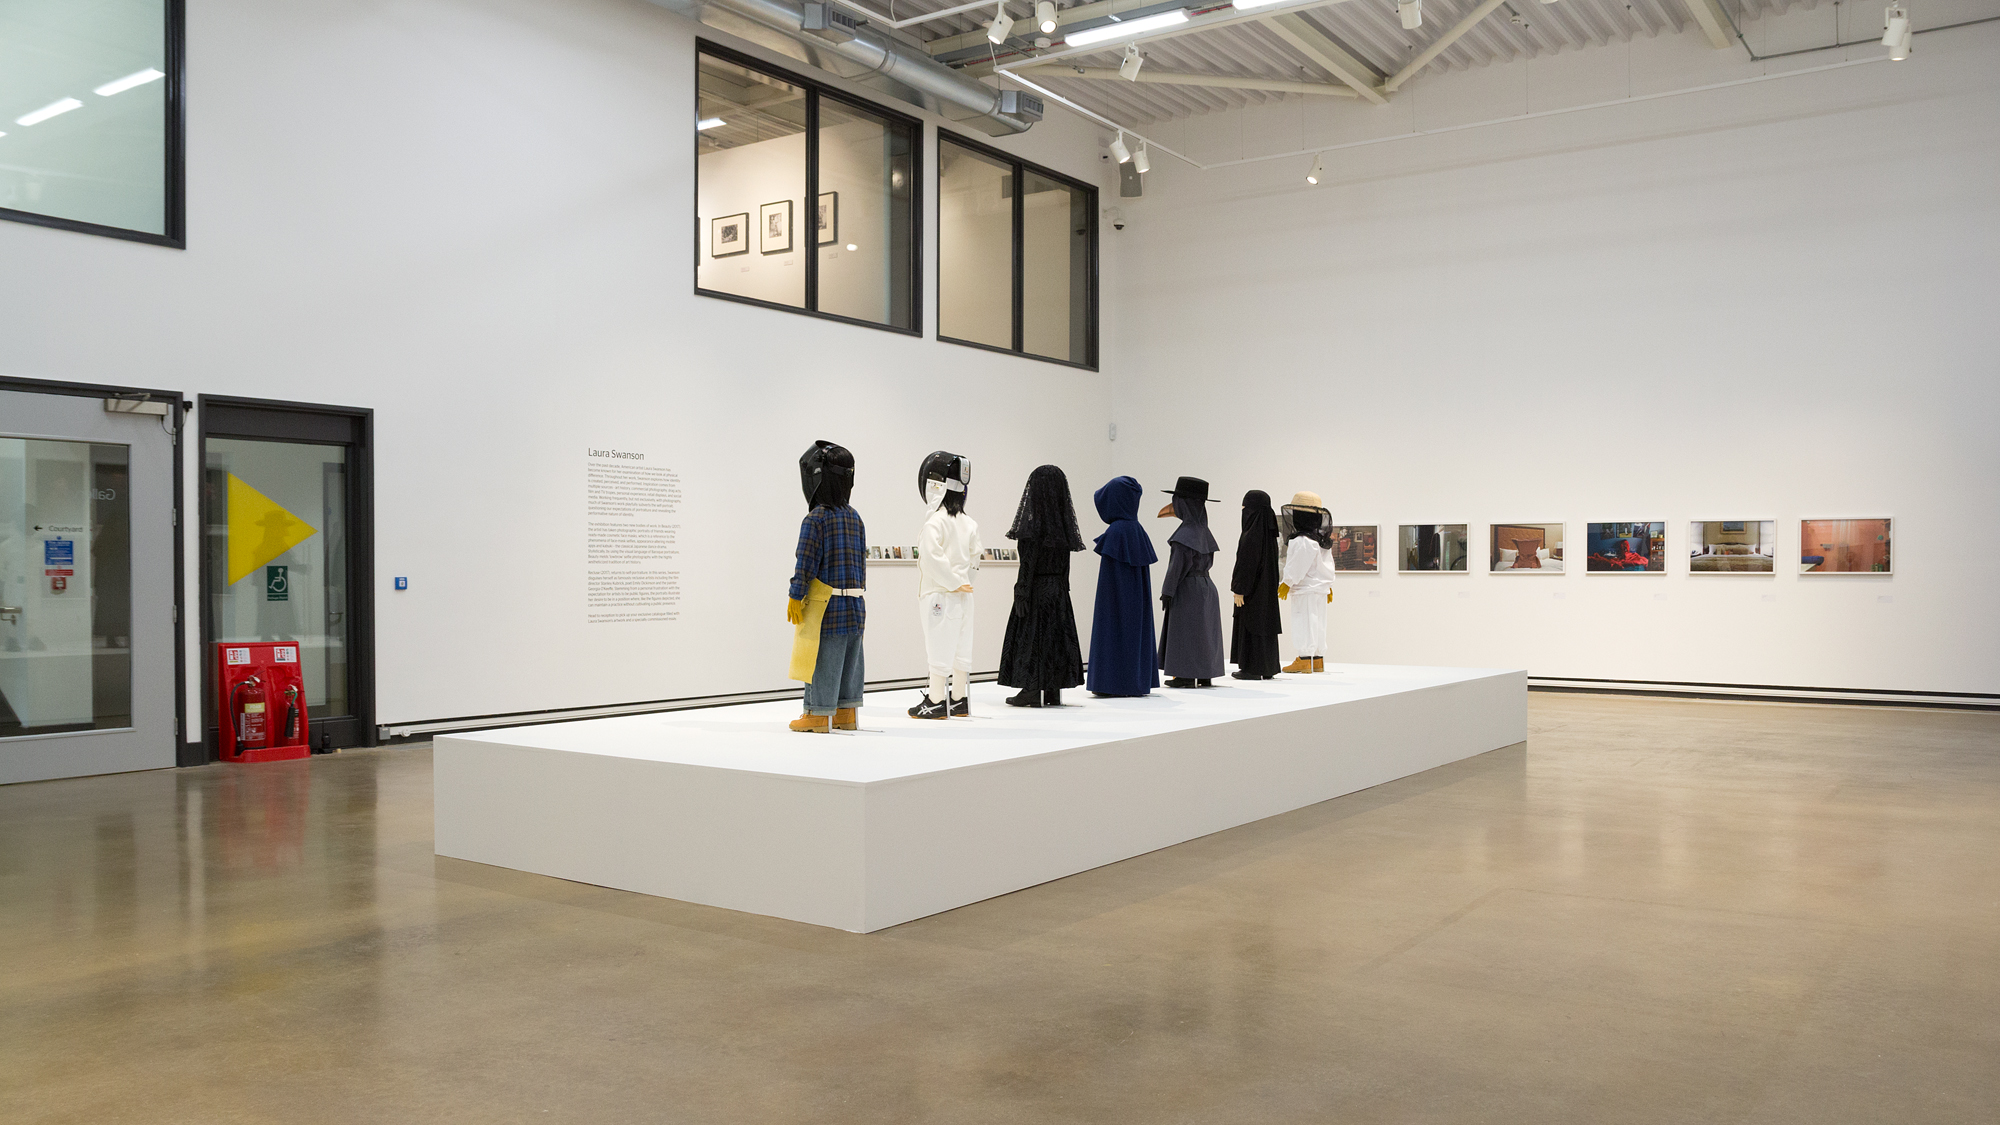 Installation view of Uniforms (2015) and Anti-Self-Portraits (2005 - 2008)